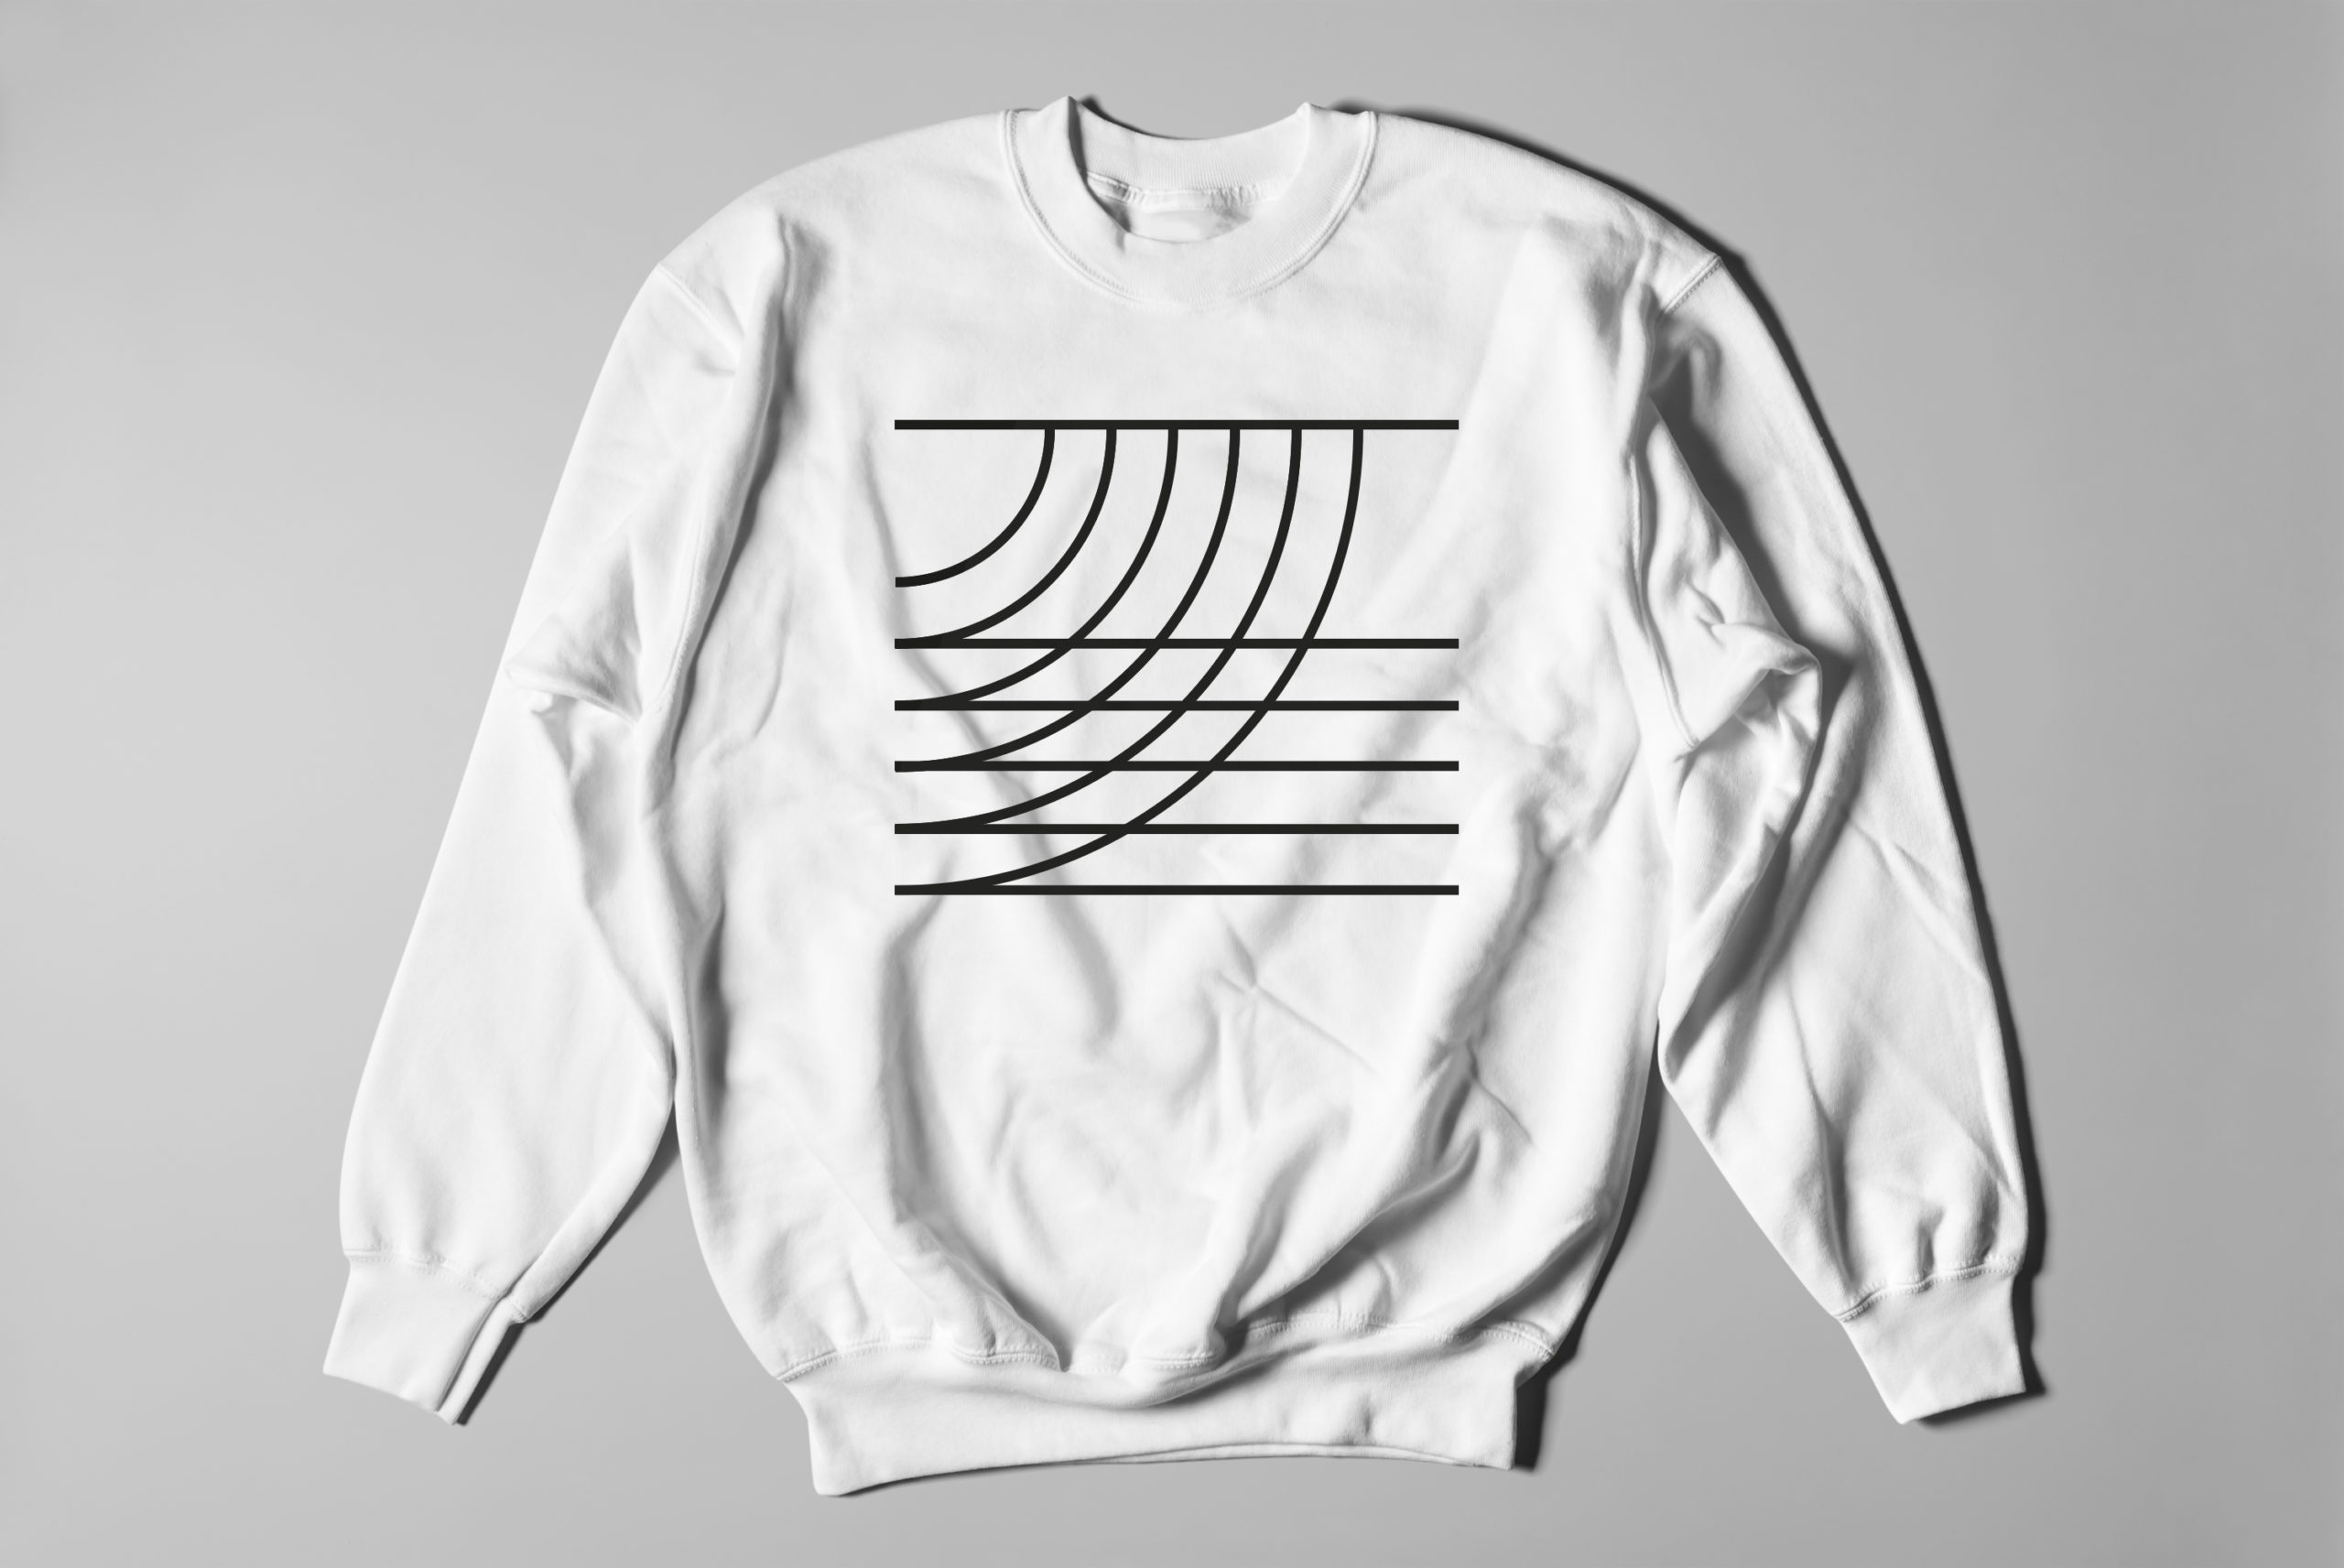 all-in-one_Crewneck-Sweater-Mock-up